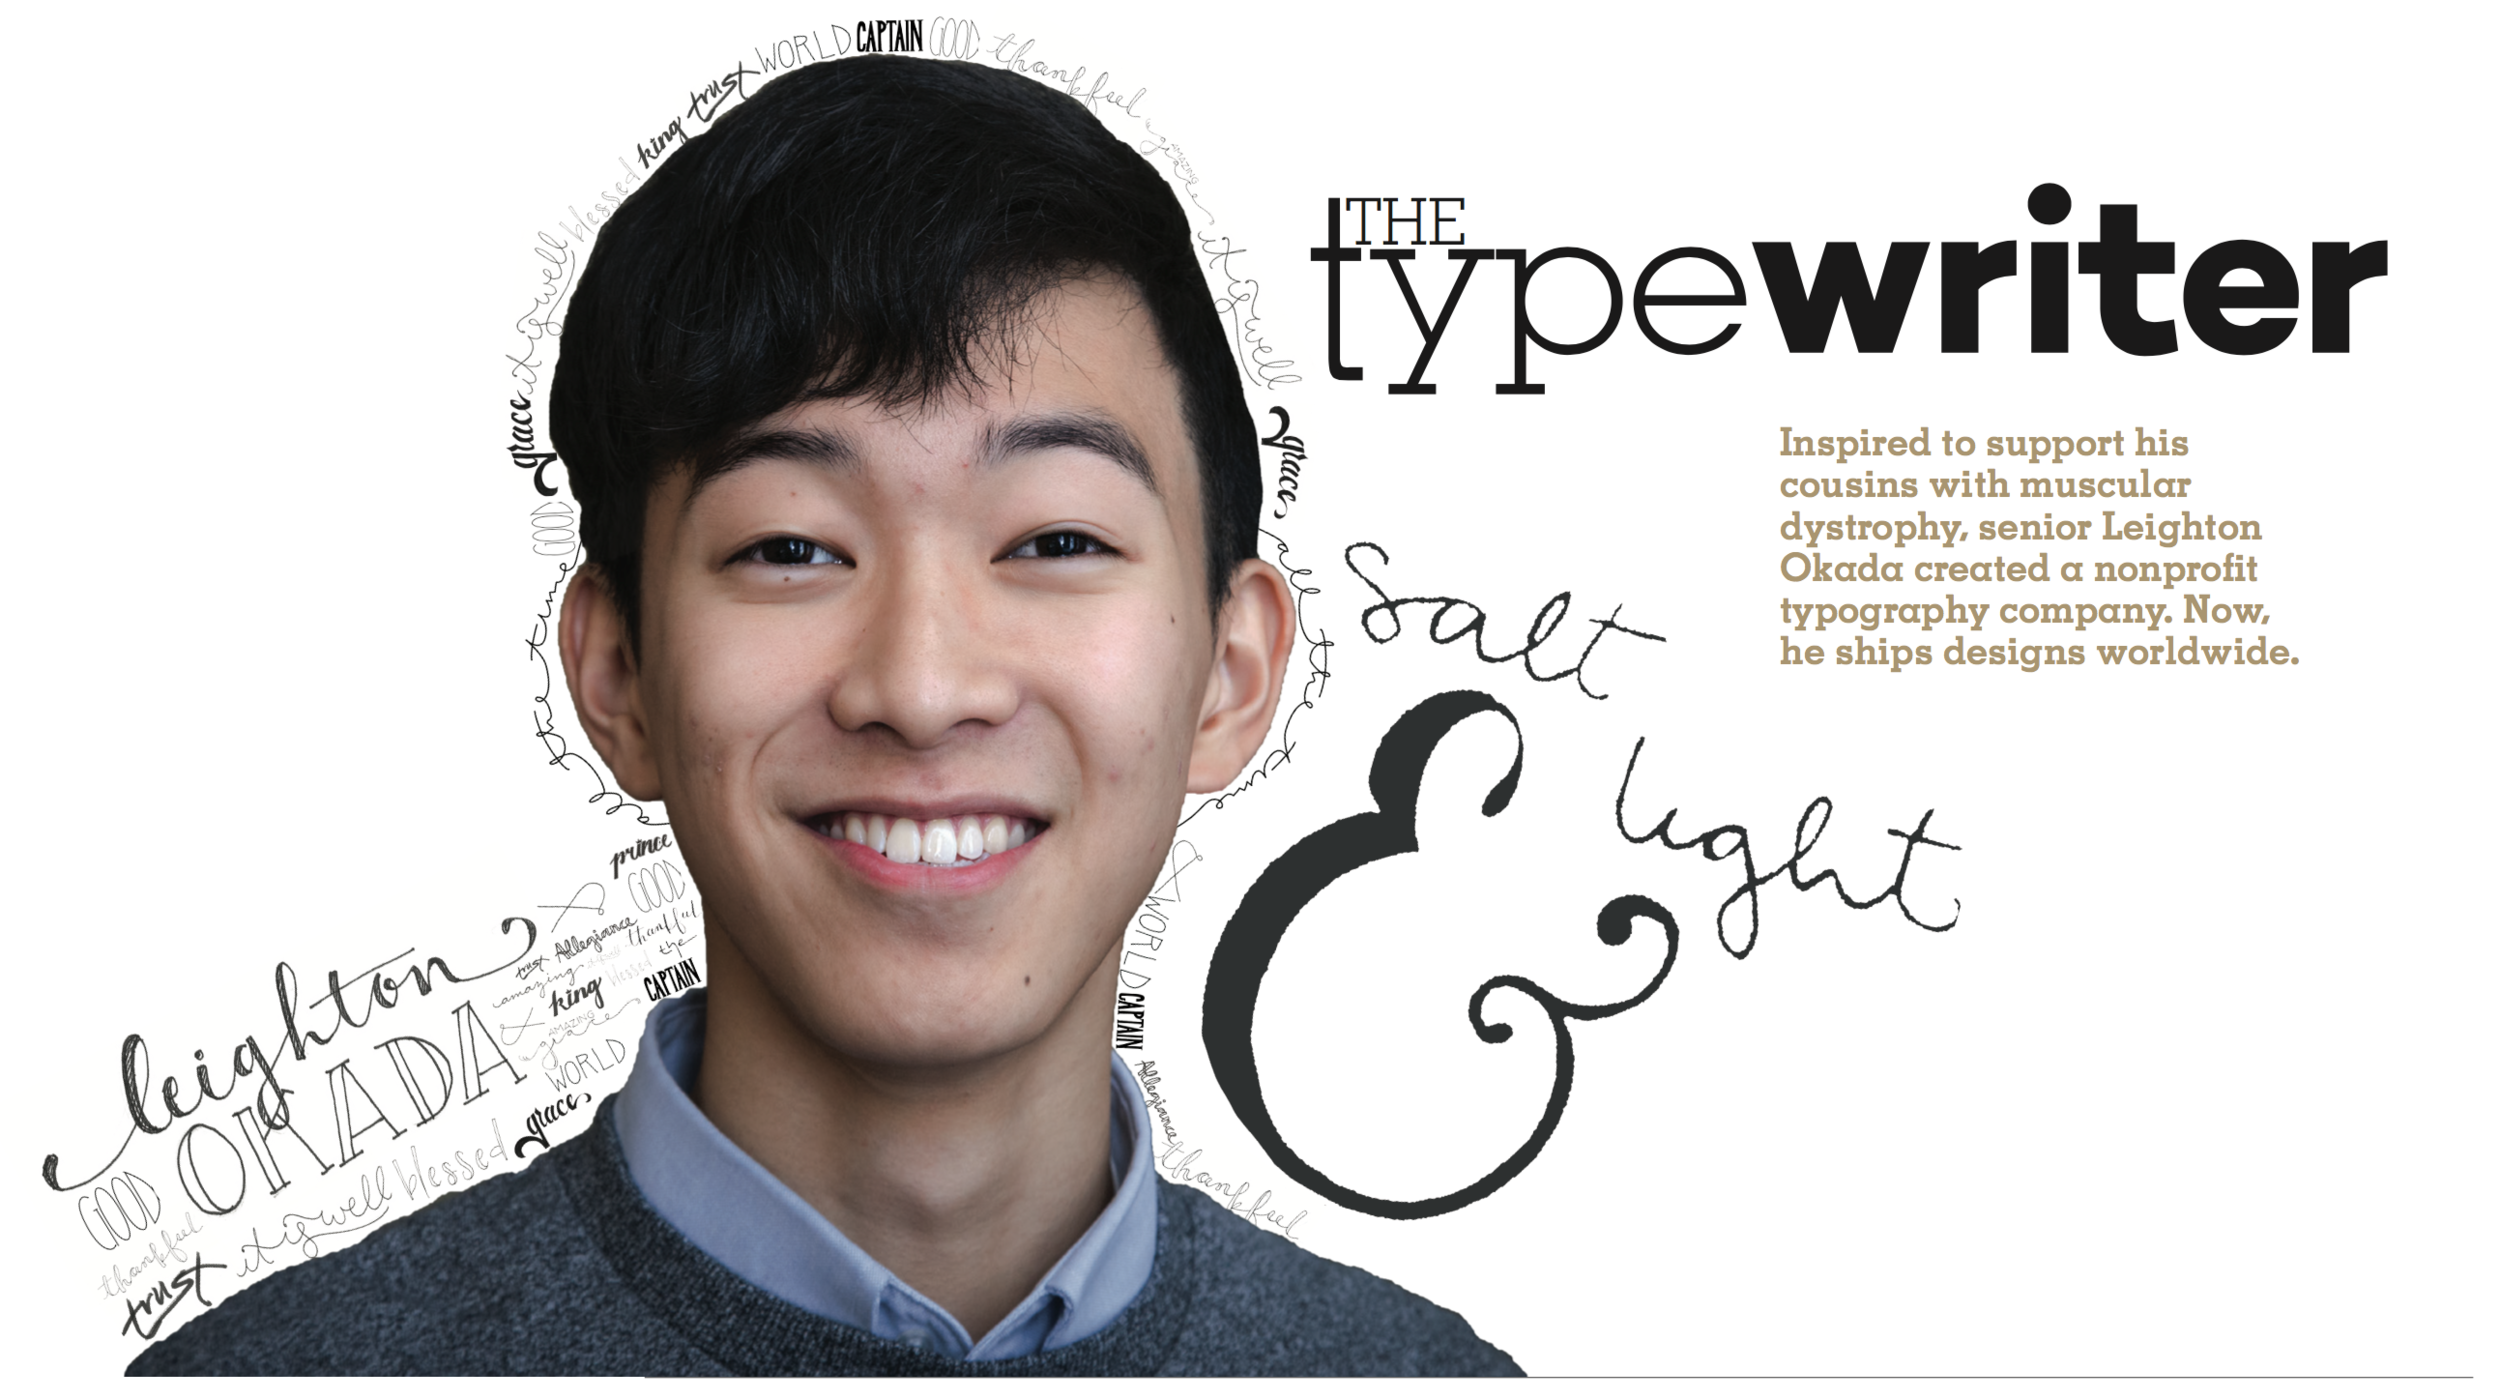 Senior Leighton Okada's growing typography nonprofit was creating waves in the community at the time of this story's release. However, although many people knew about the nonprofit, many had never seen his work. With this, I knew we needed to include his own art in this visual.